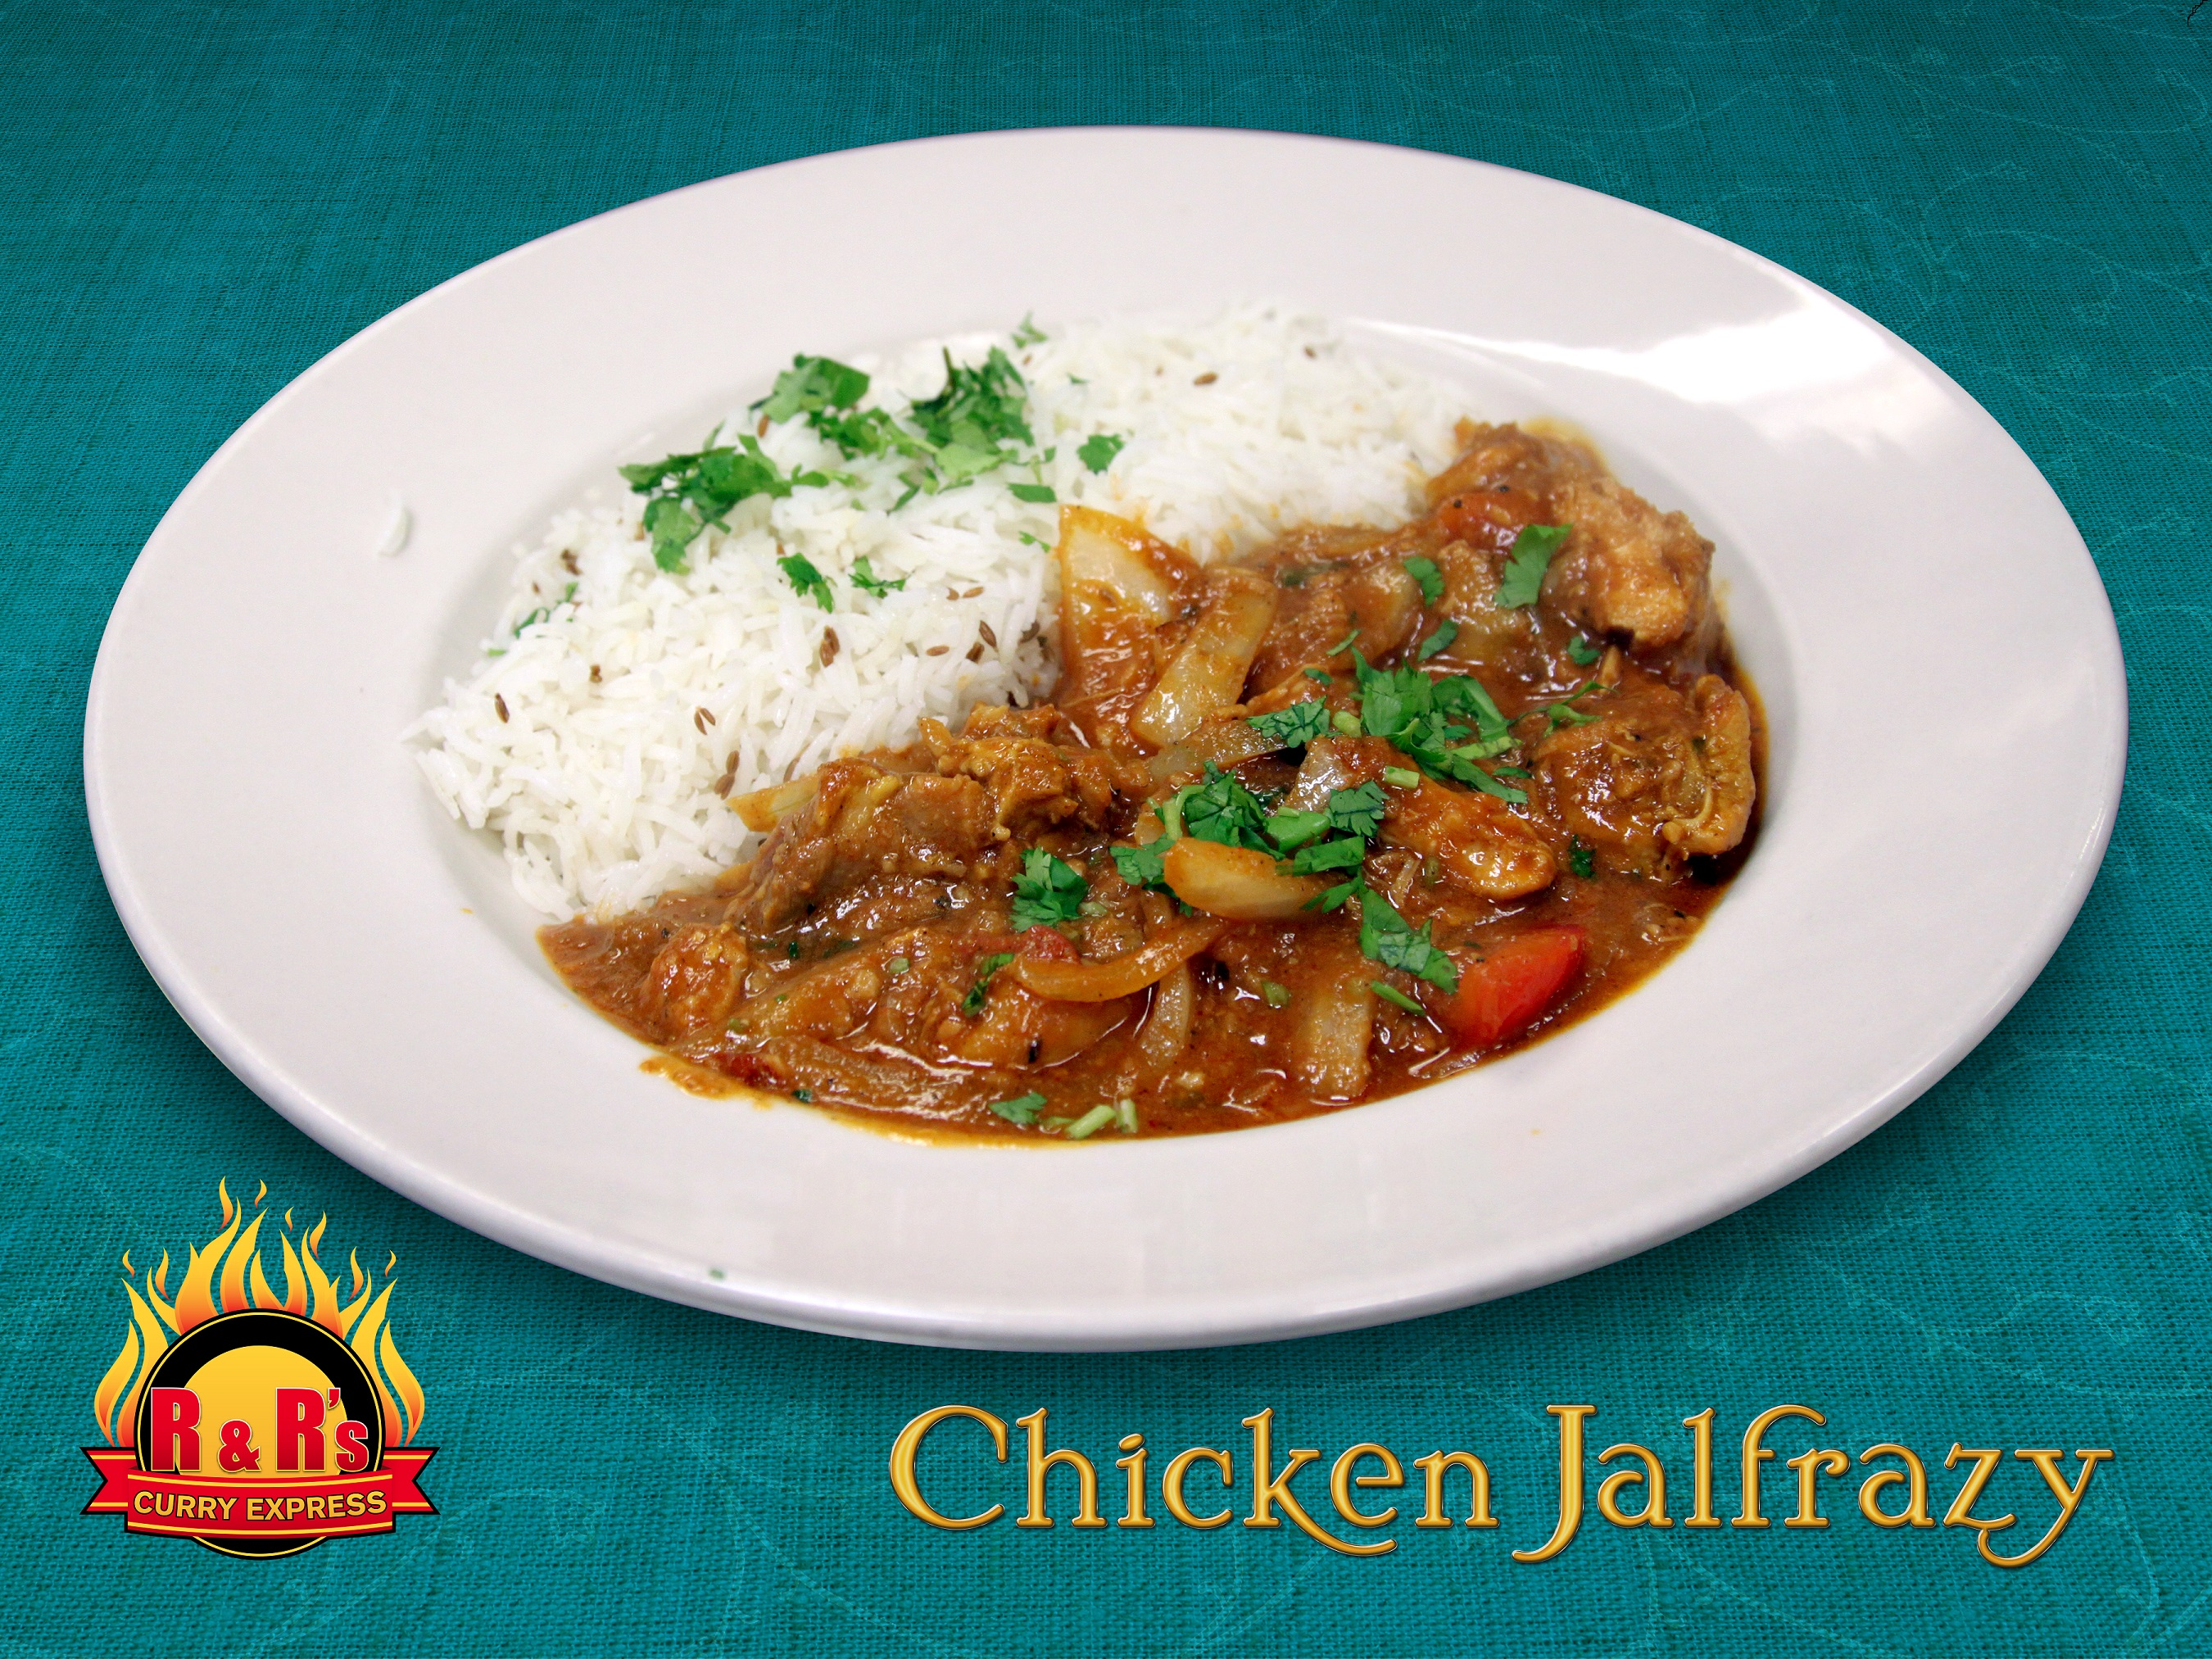 R&R Curry - Chicken Jalfrazy Print